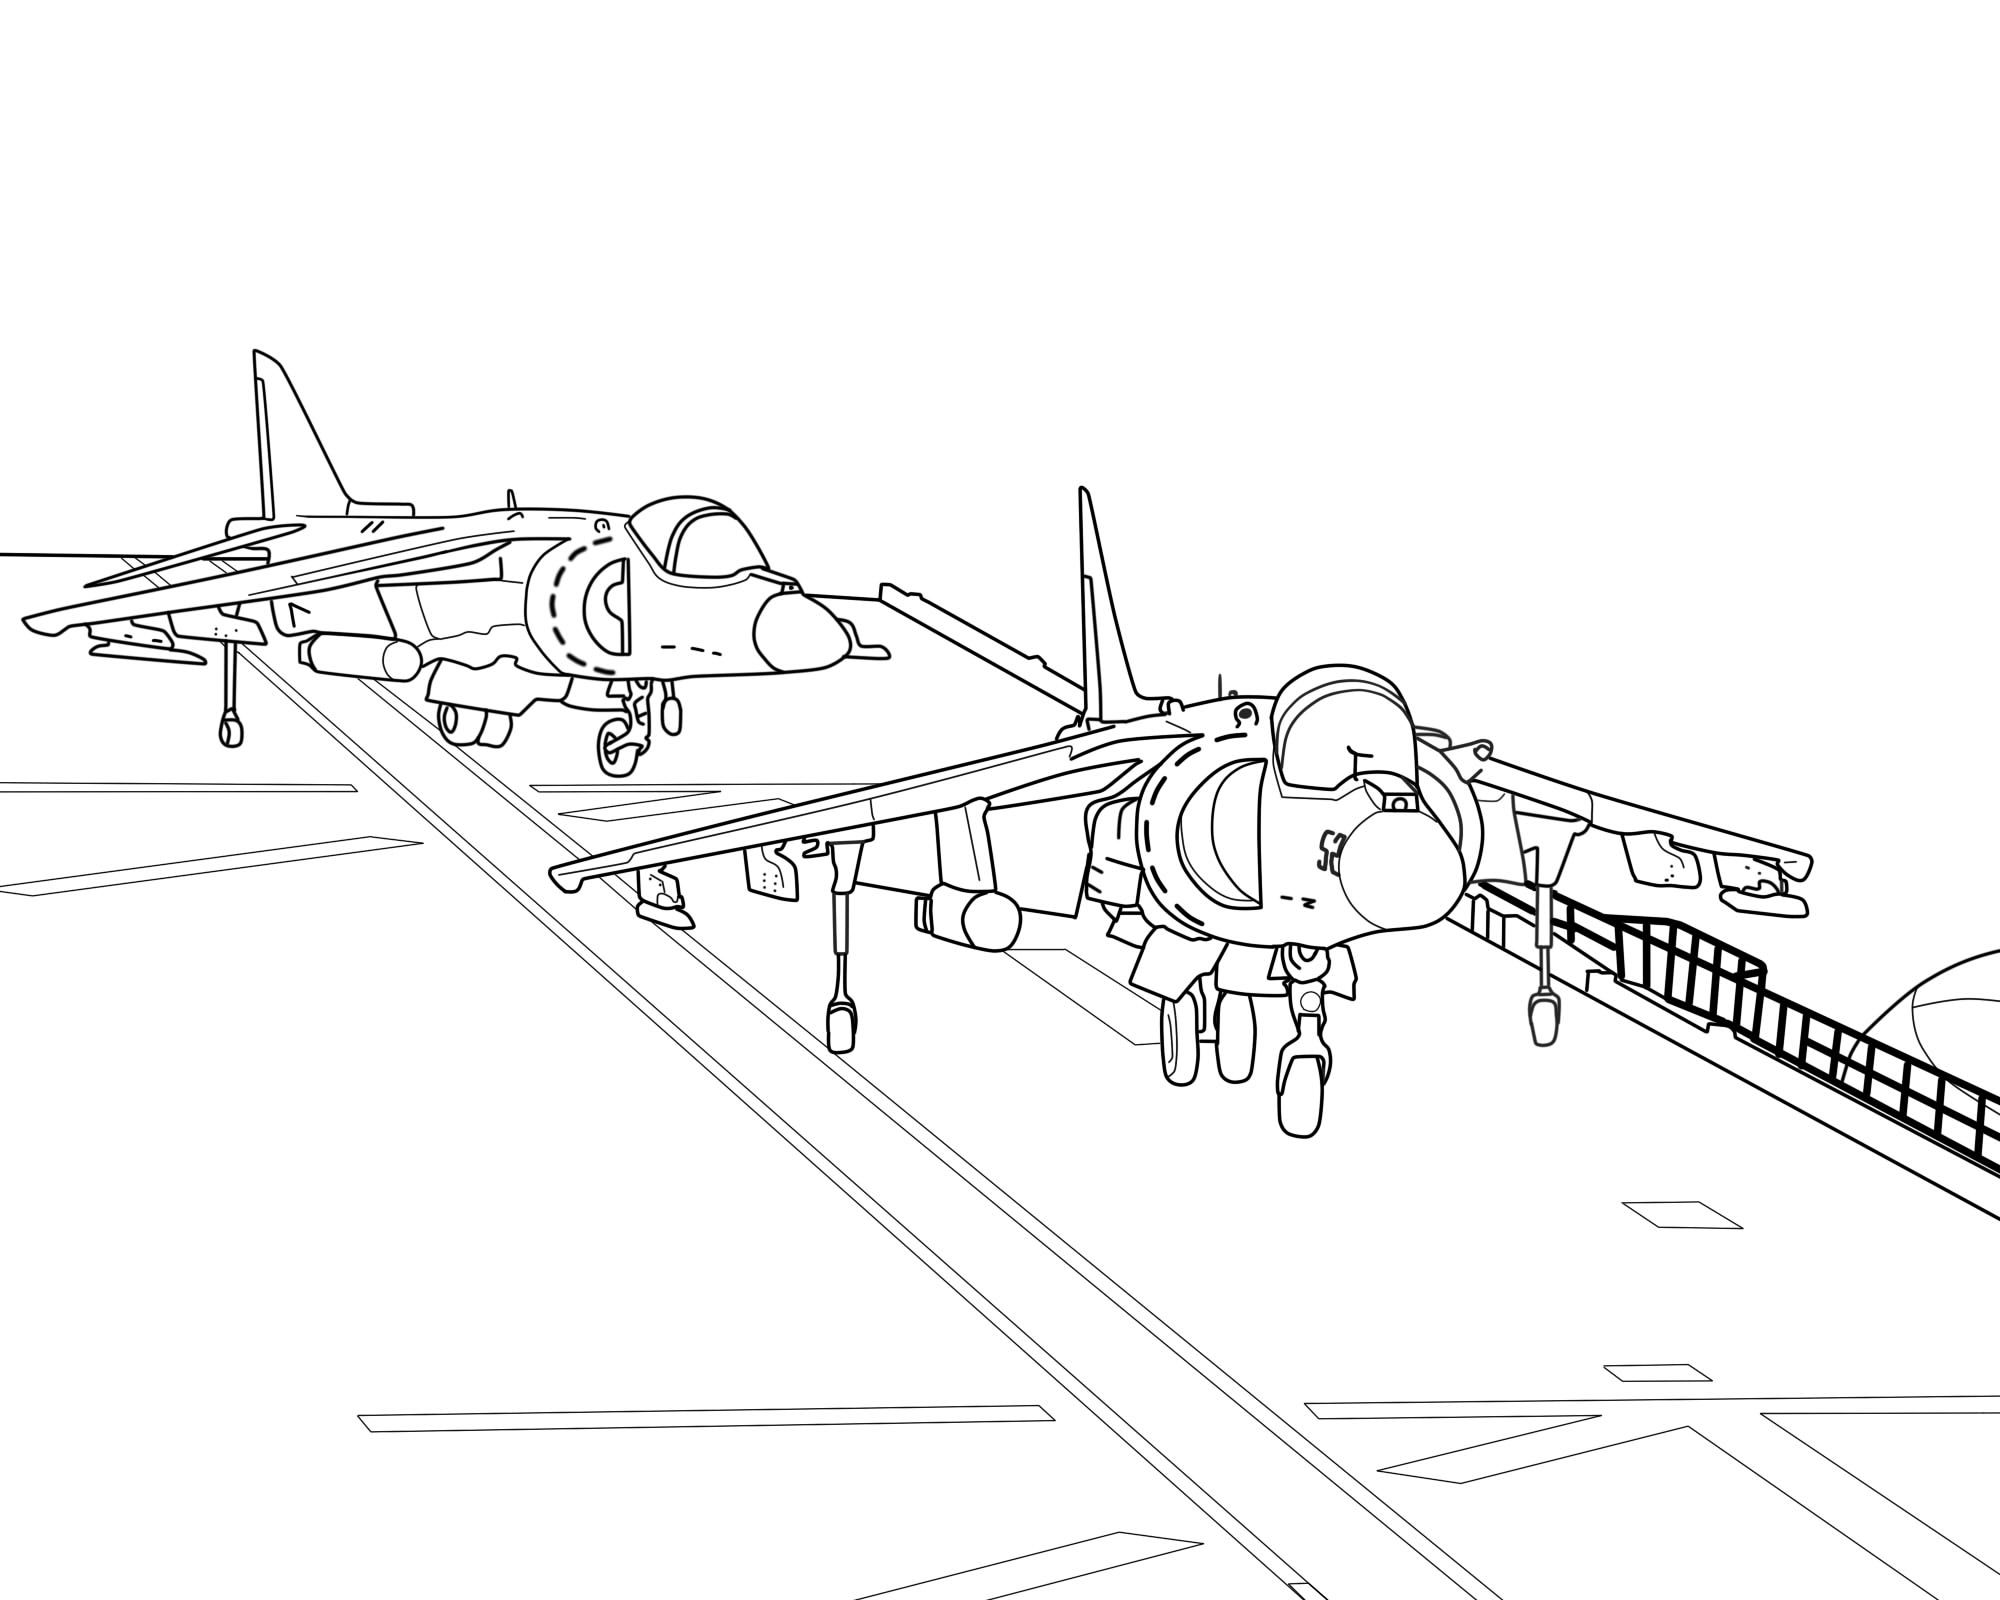 Line Drawing Jet : Line art av b harrier on aircraft carrier by oleedueolo